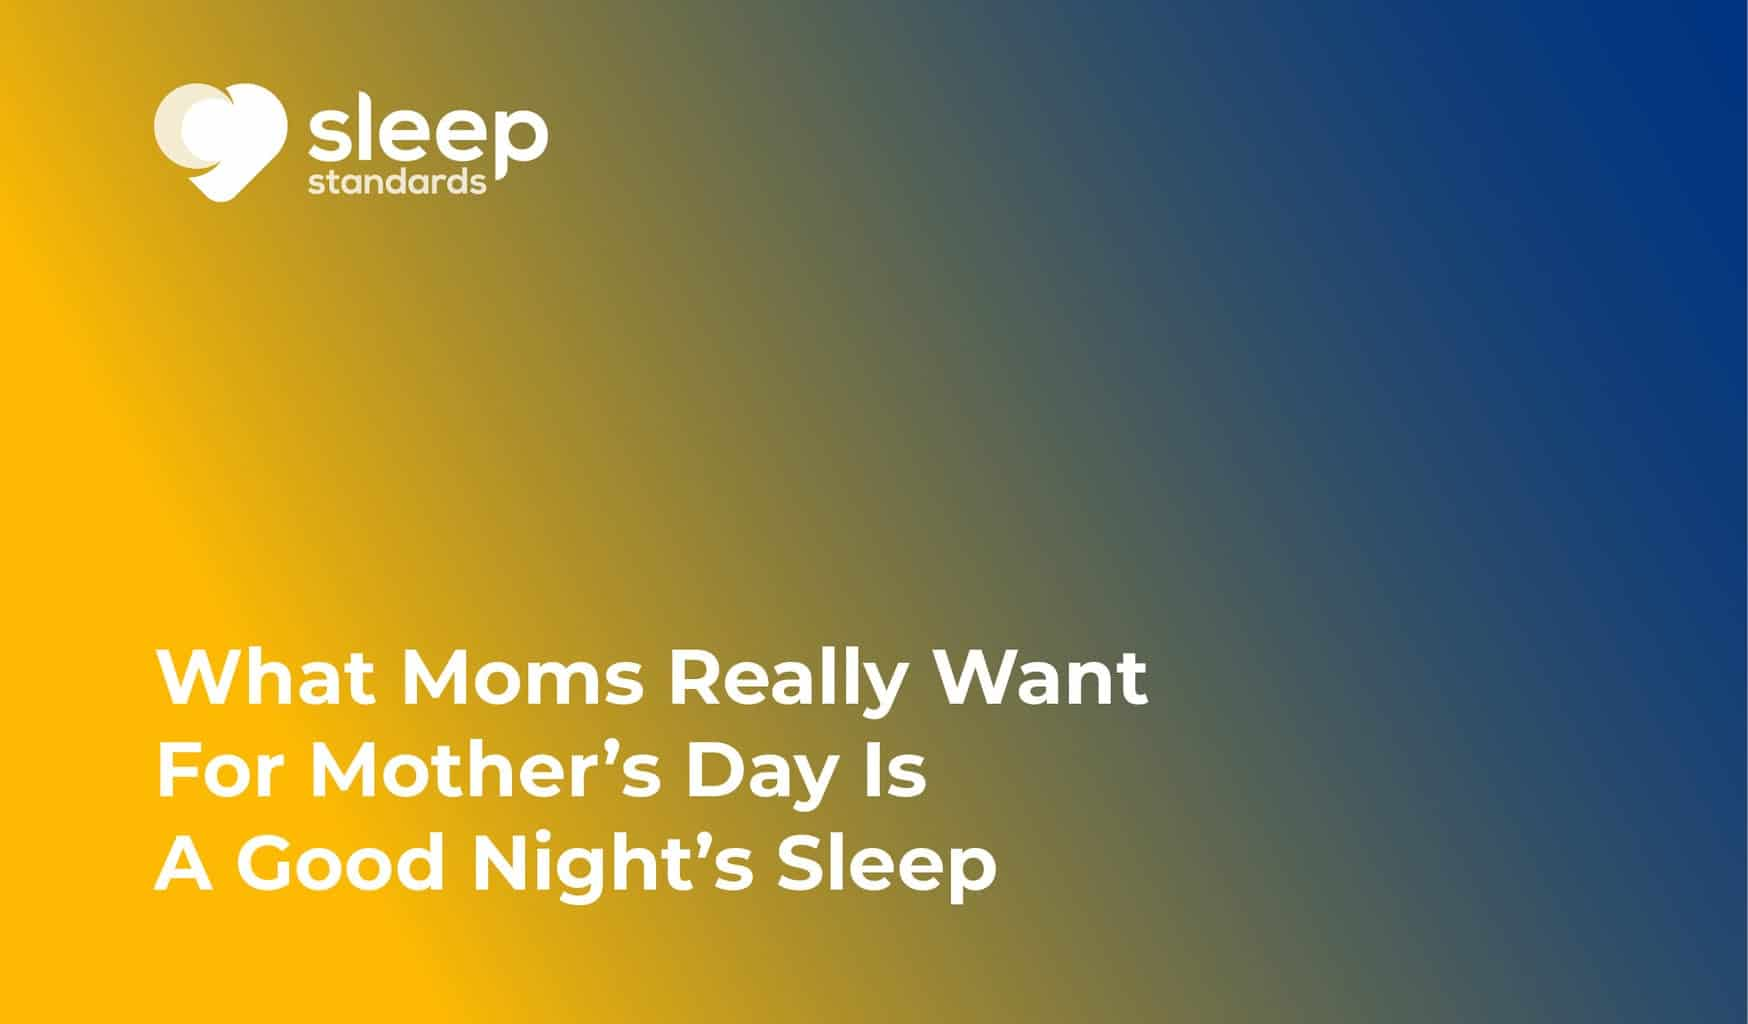 What Moms Really Want For Mother's Day Is A Good Night's Sleep